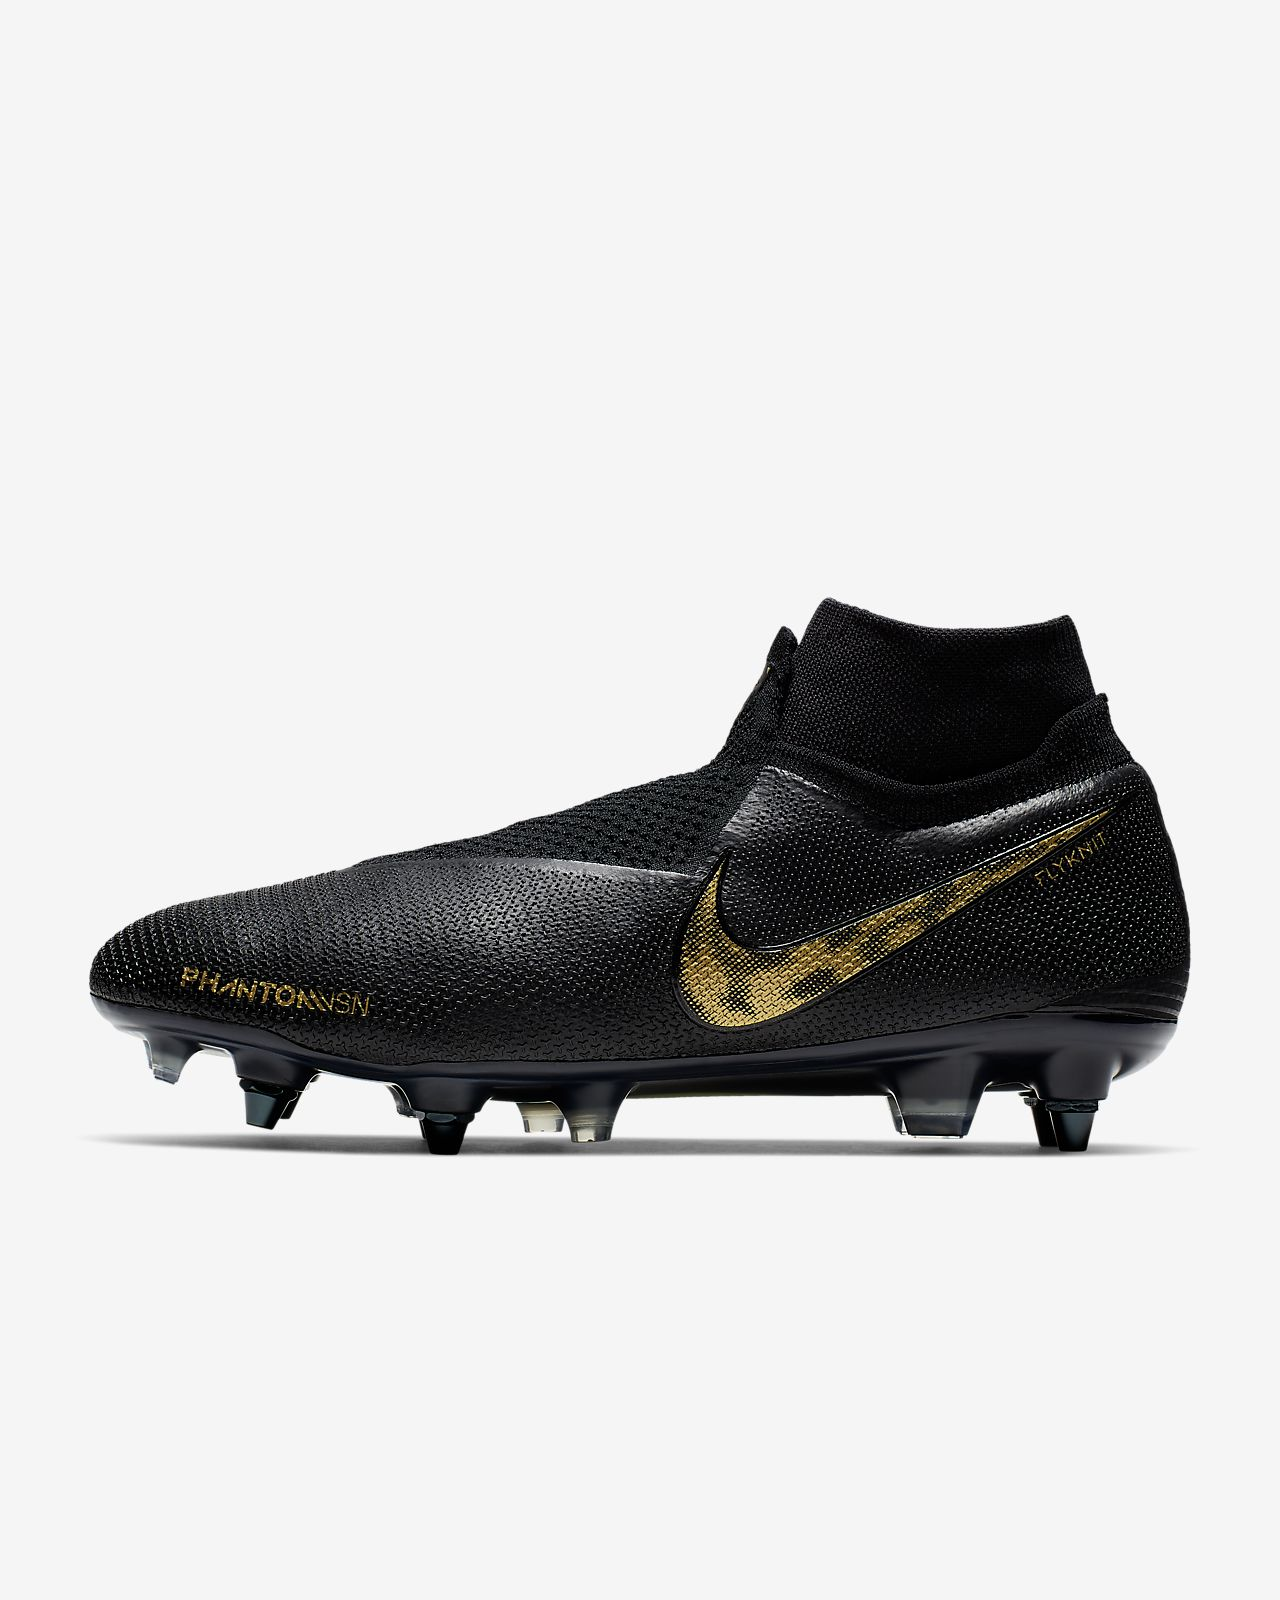 Nike Phantom Vision Elite Dynamic Fit Anti-Clog SG-PRO Botes de futbol